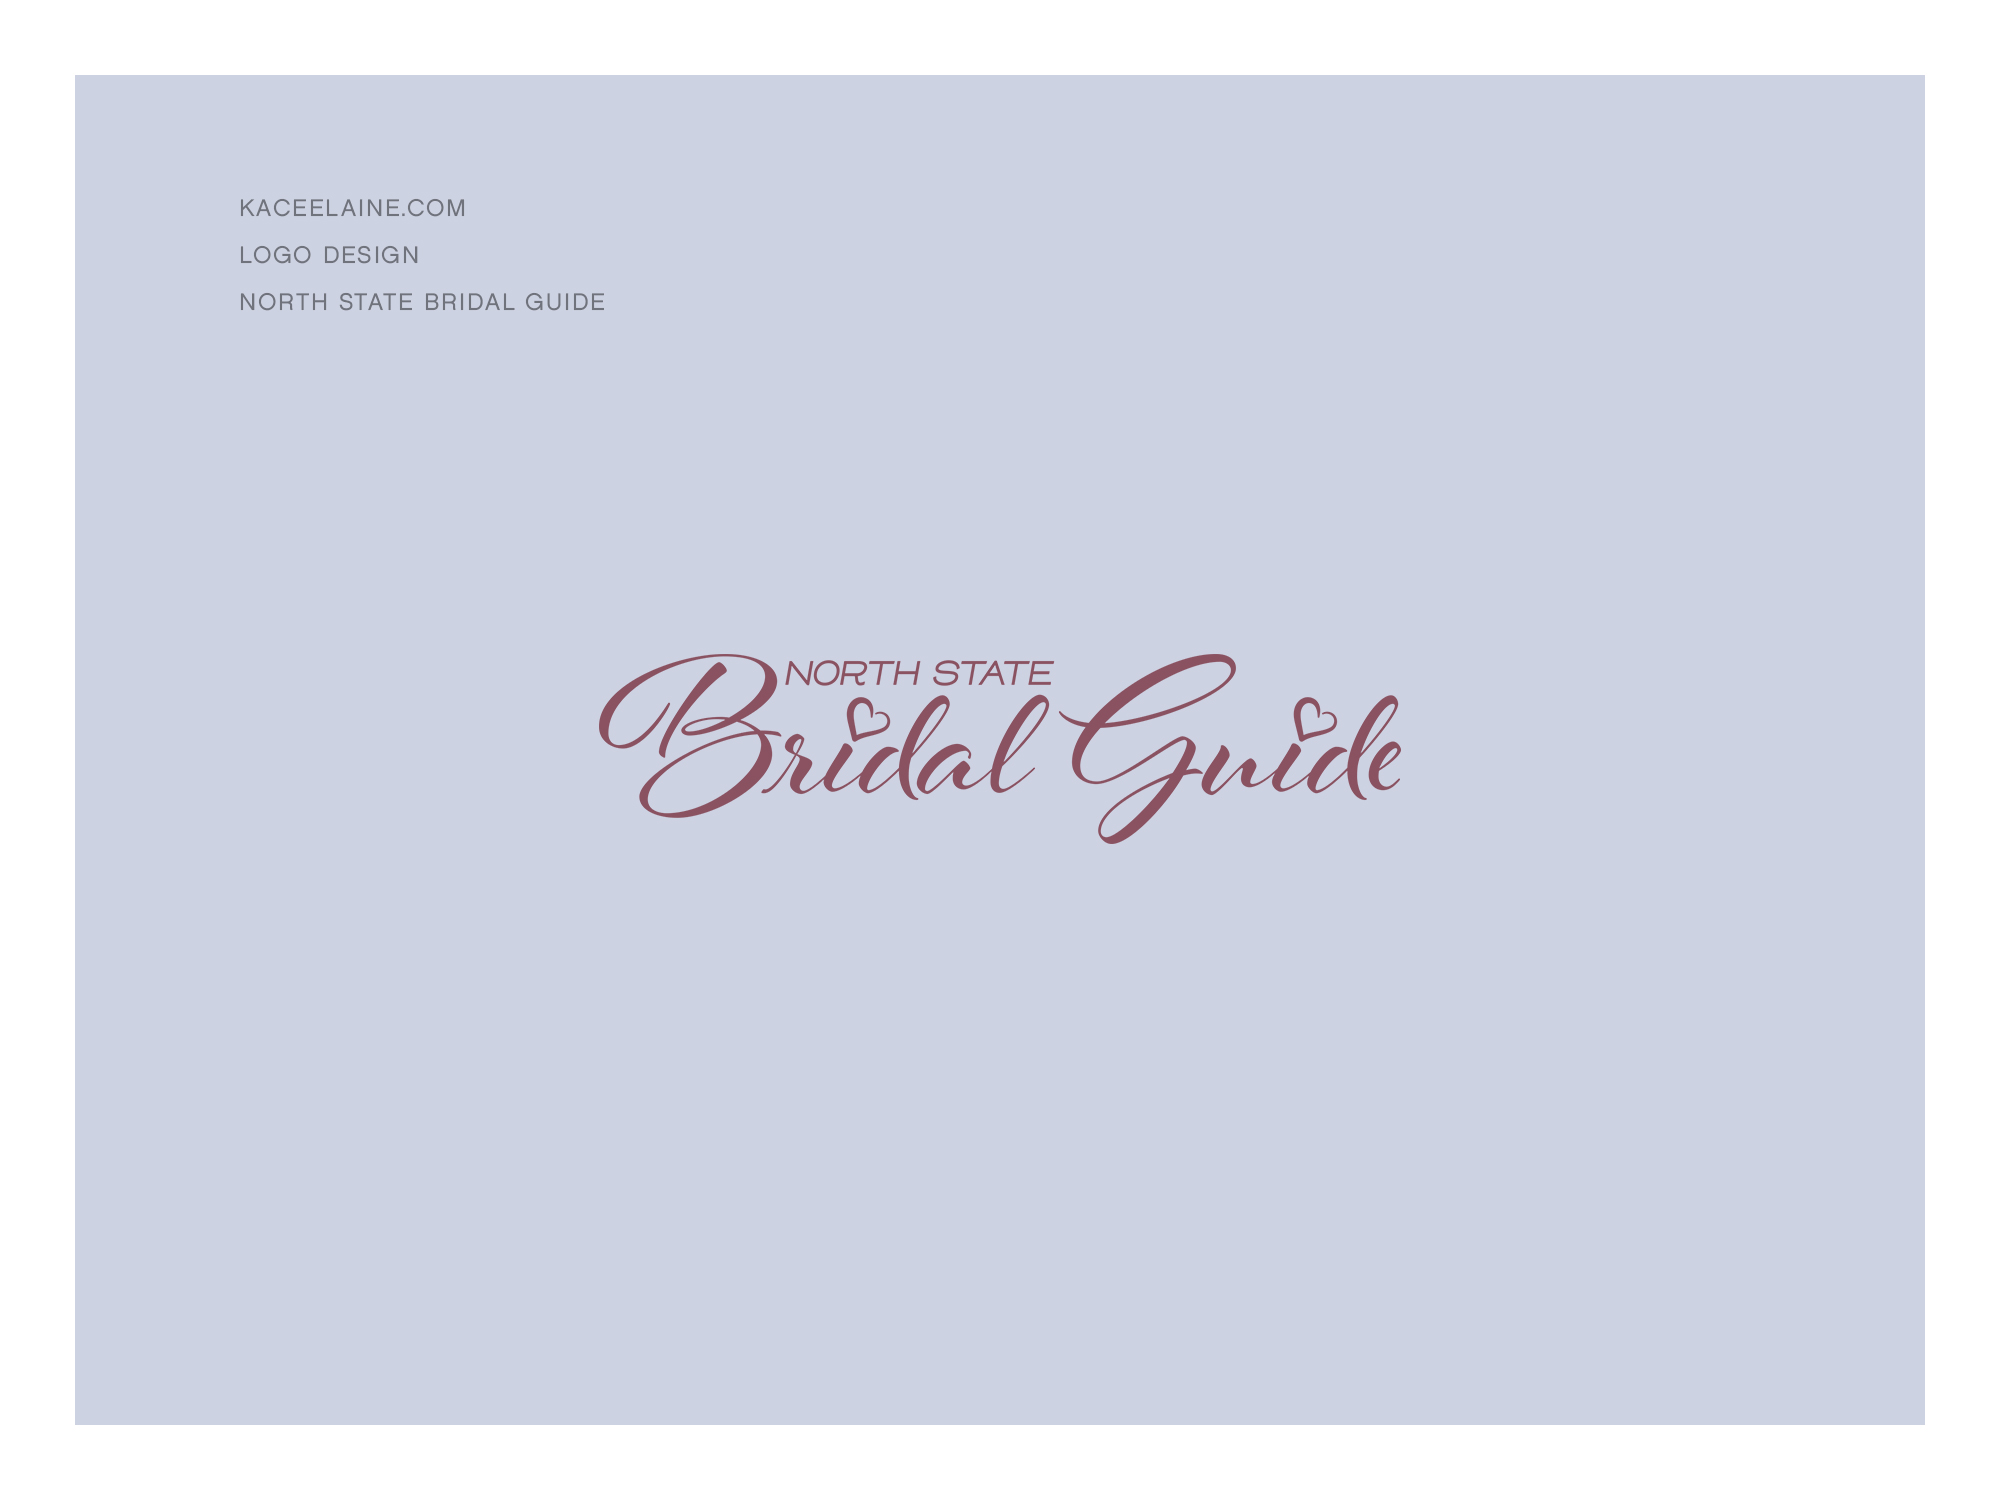 Logo Design for North State Bridal Guide